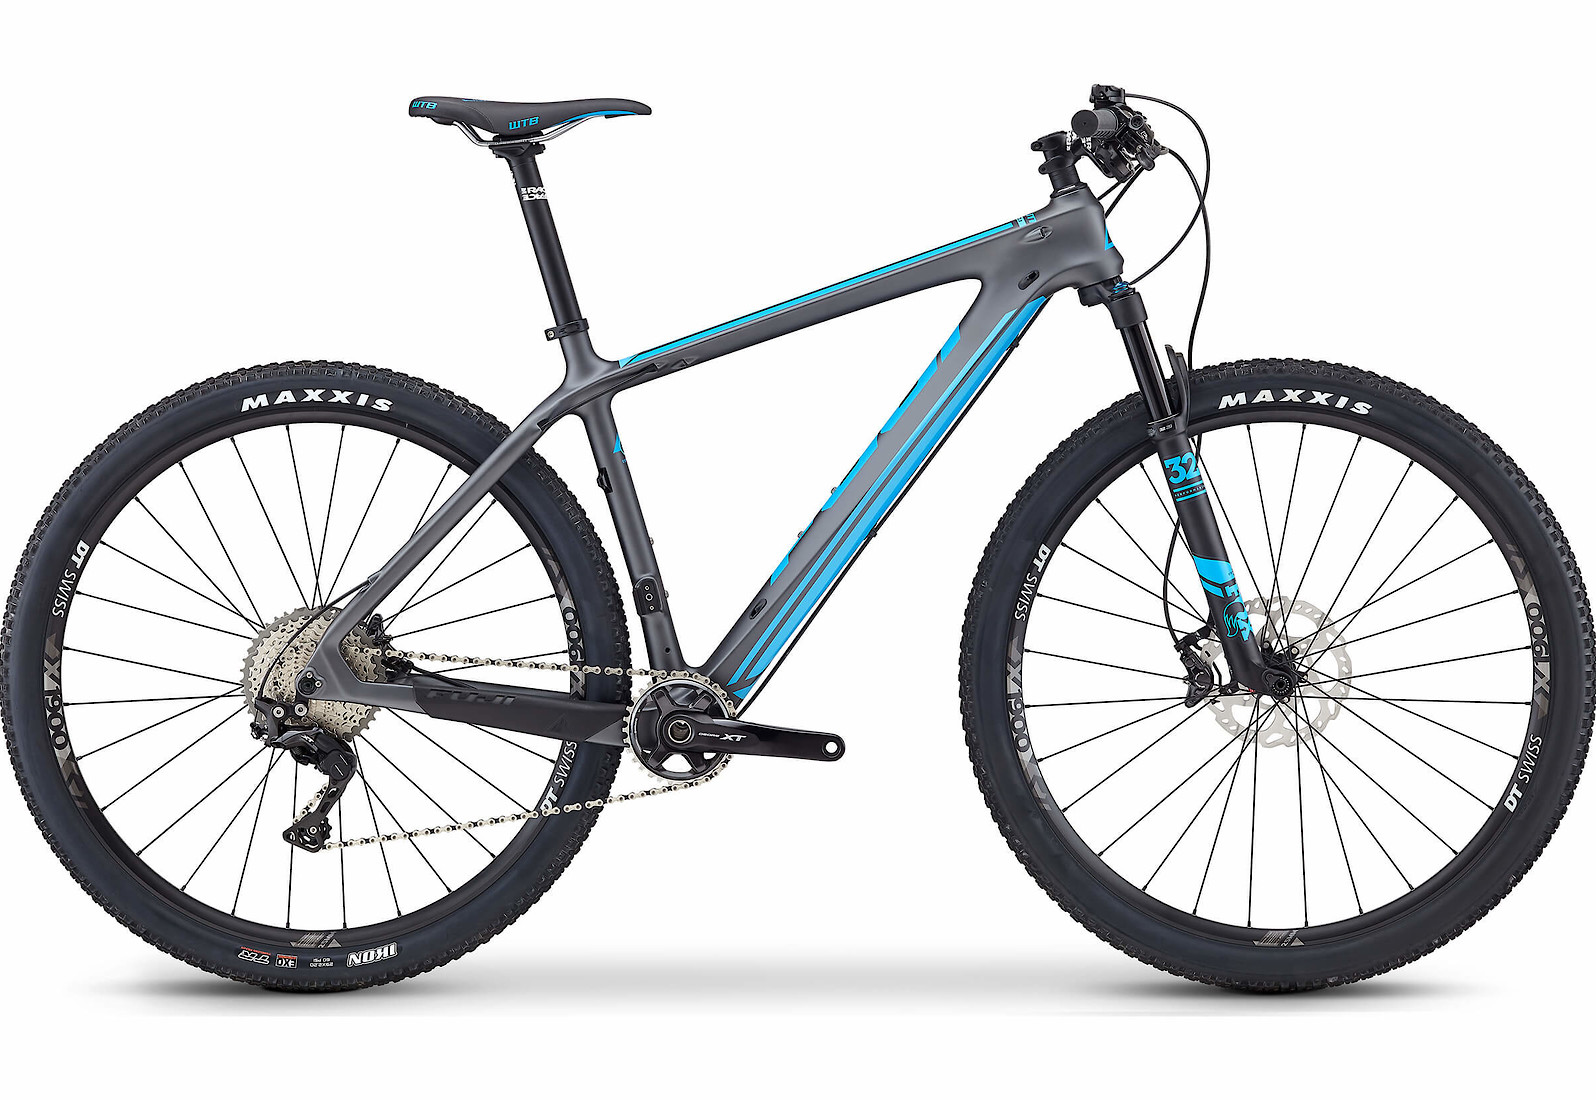 2019 Fuji SLM 29 2.1 Dark Gray